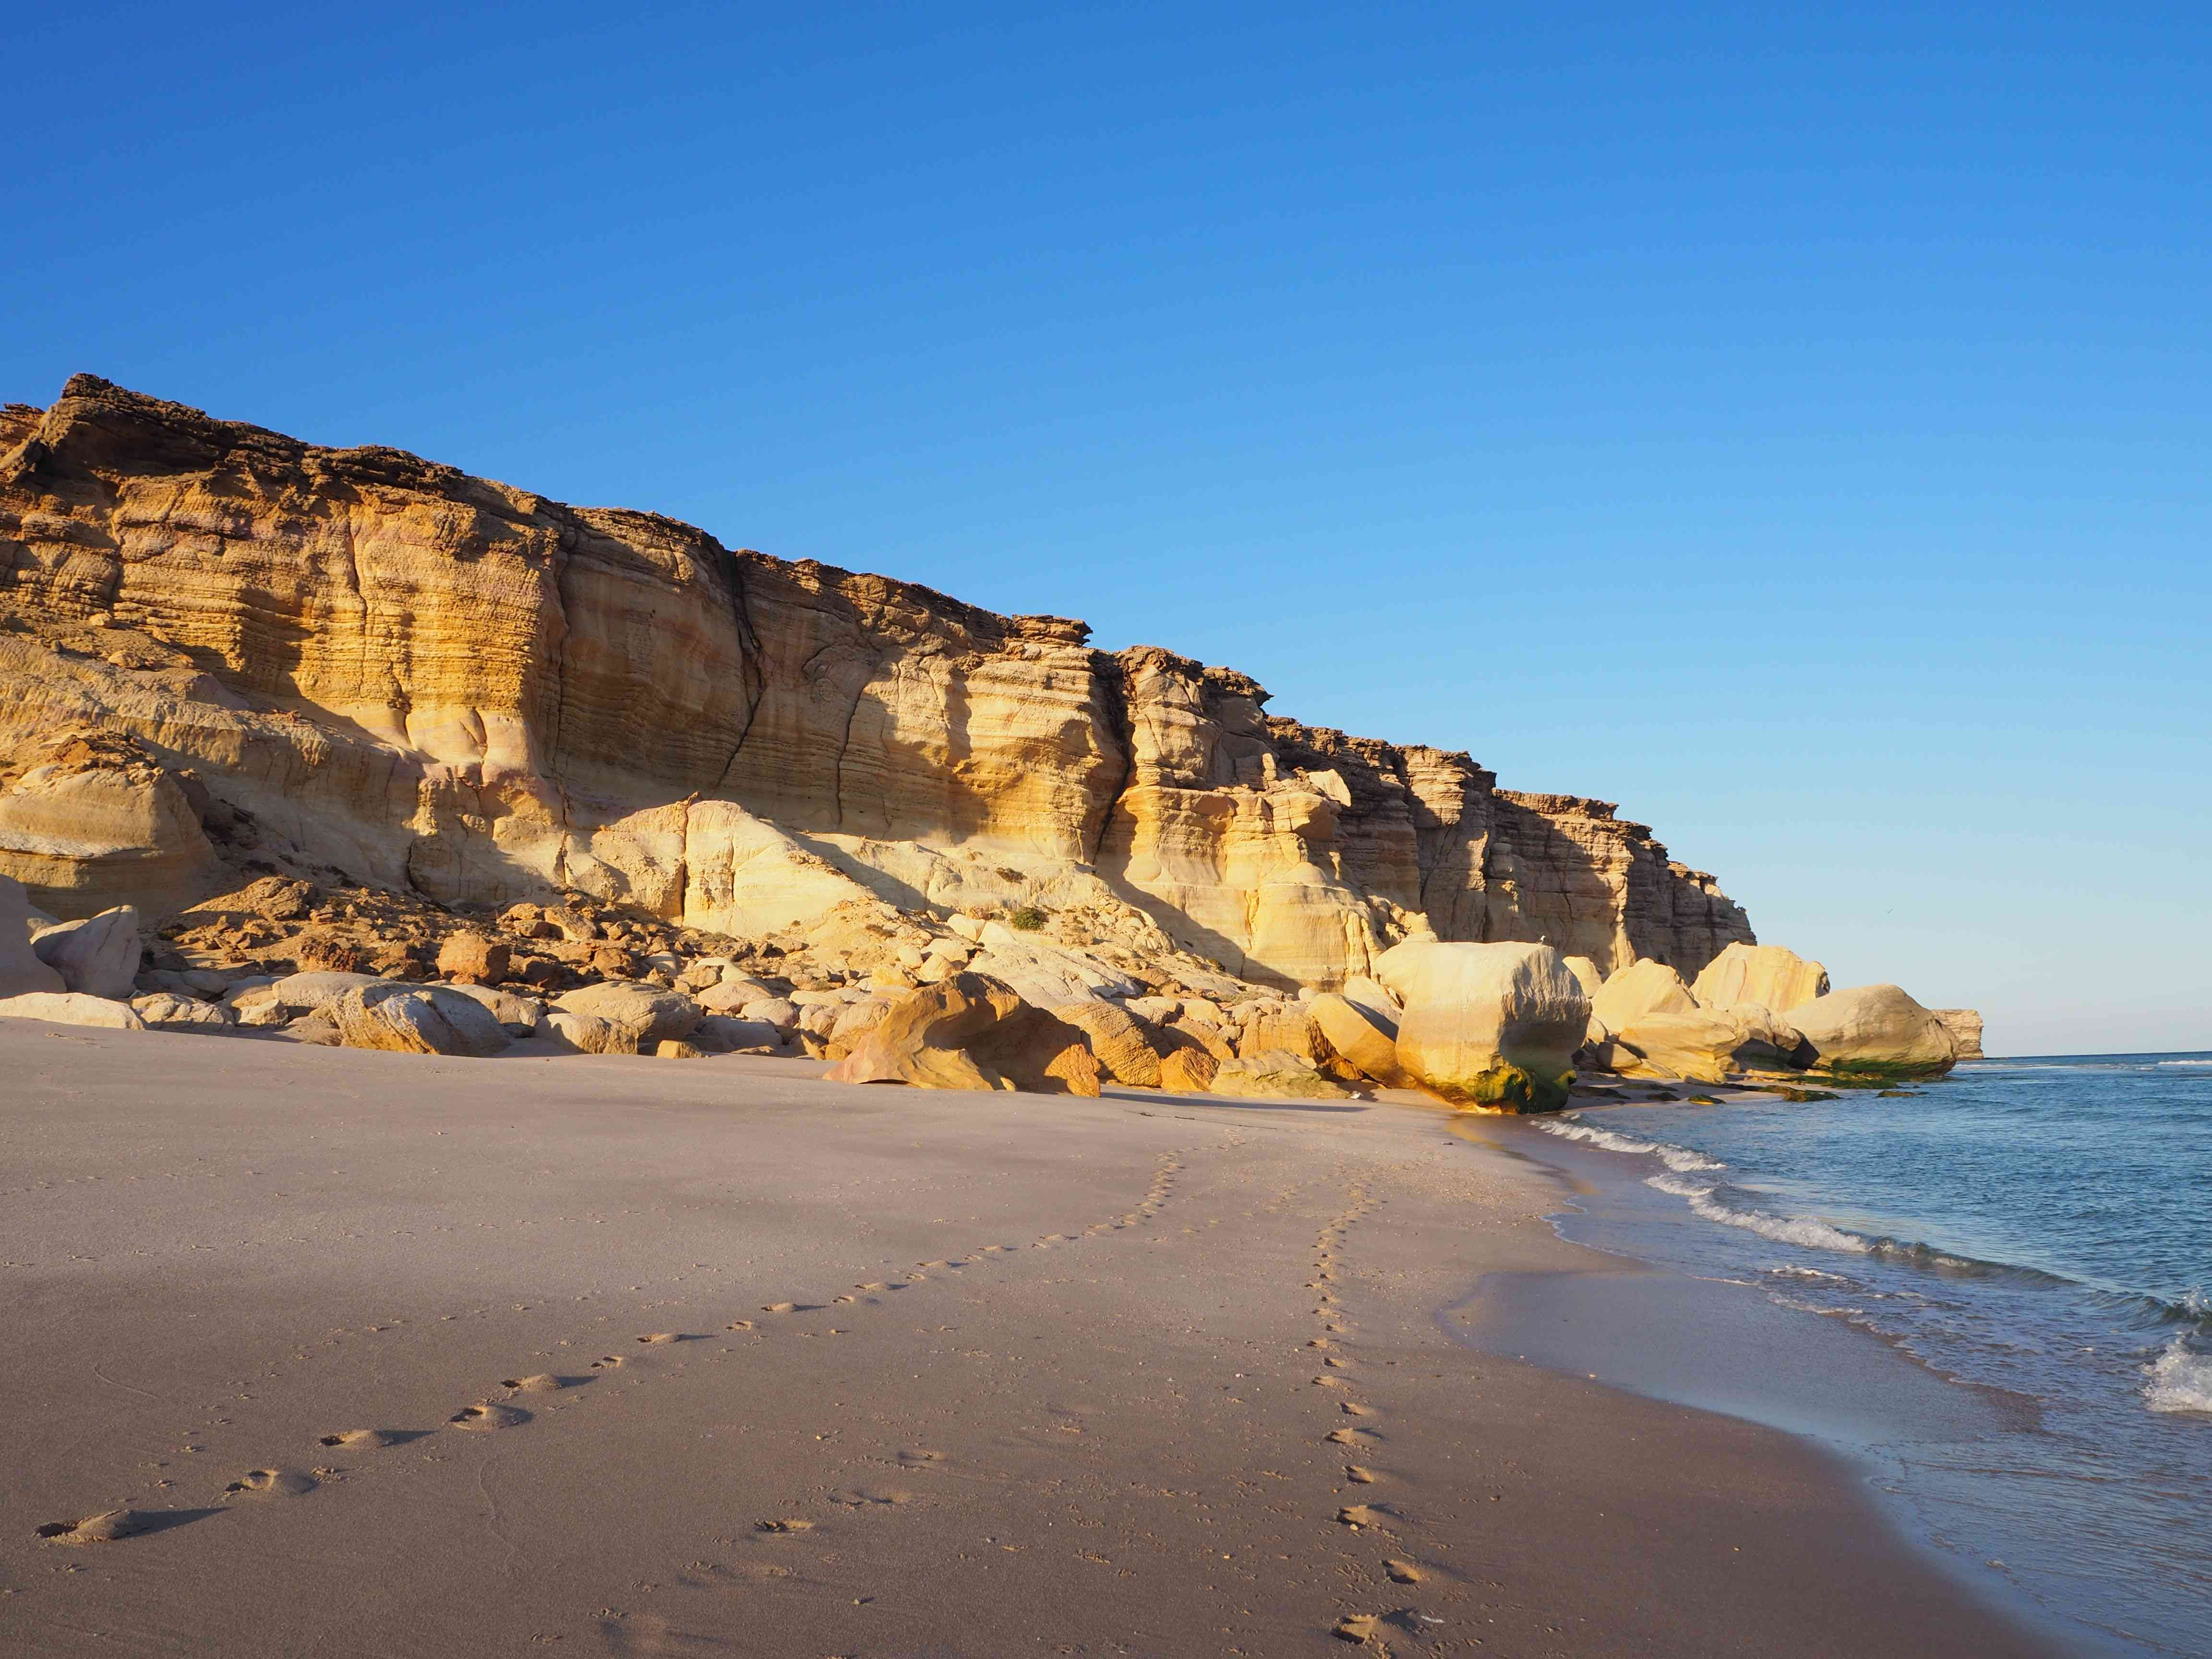 two sets of footprints on a beach in Oman with stone cliffs in the distance